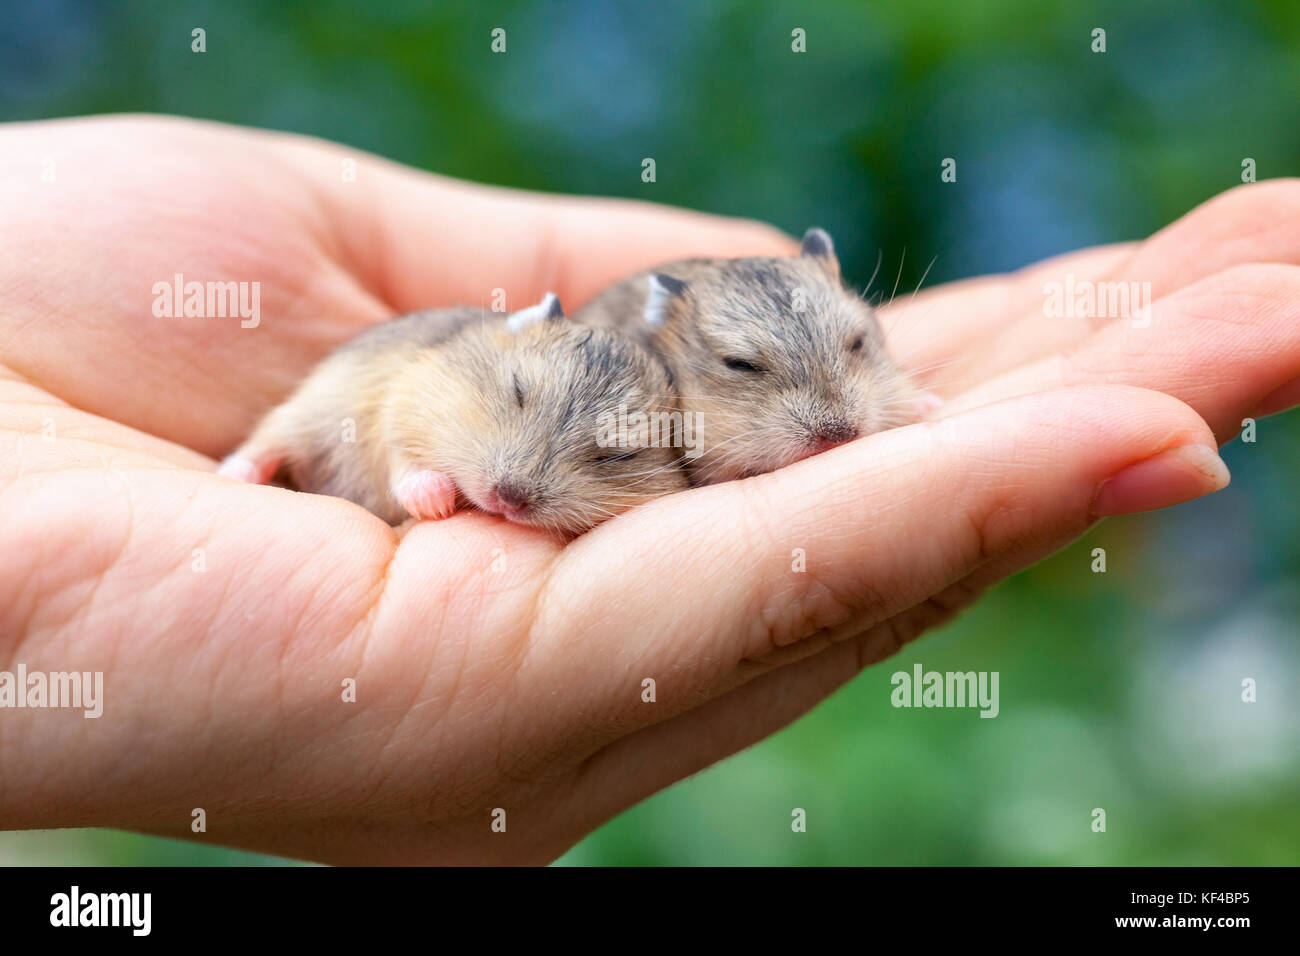 Person holding two cute sleeping baby hamsters in his palm outdoor